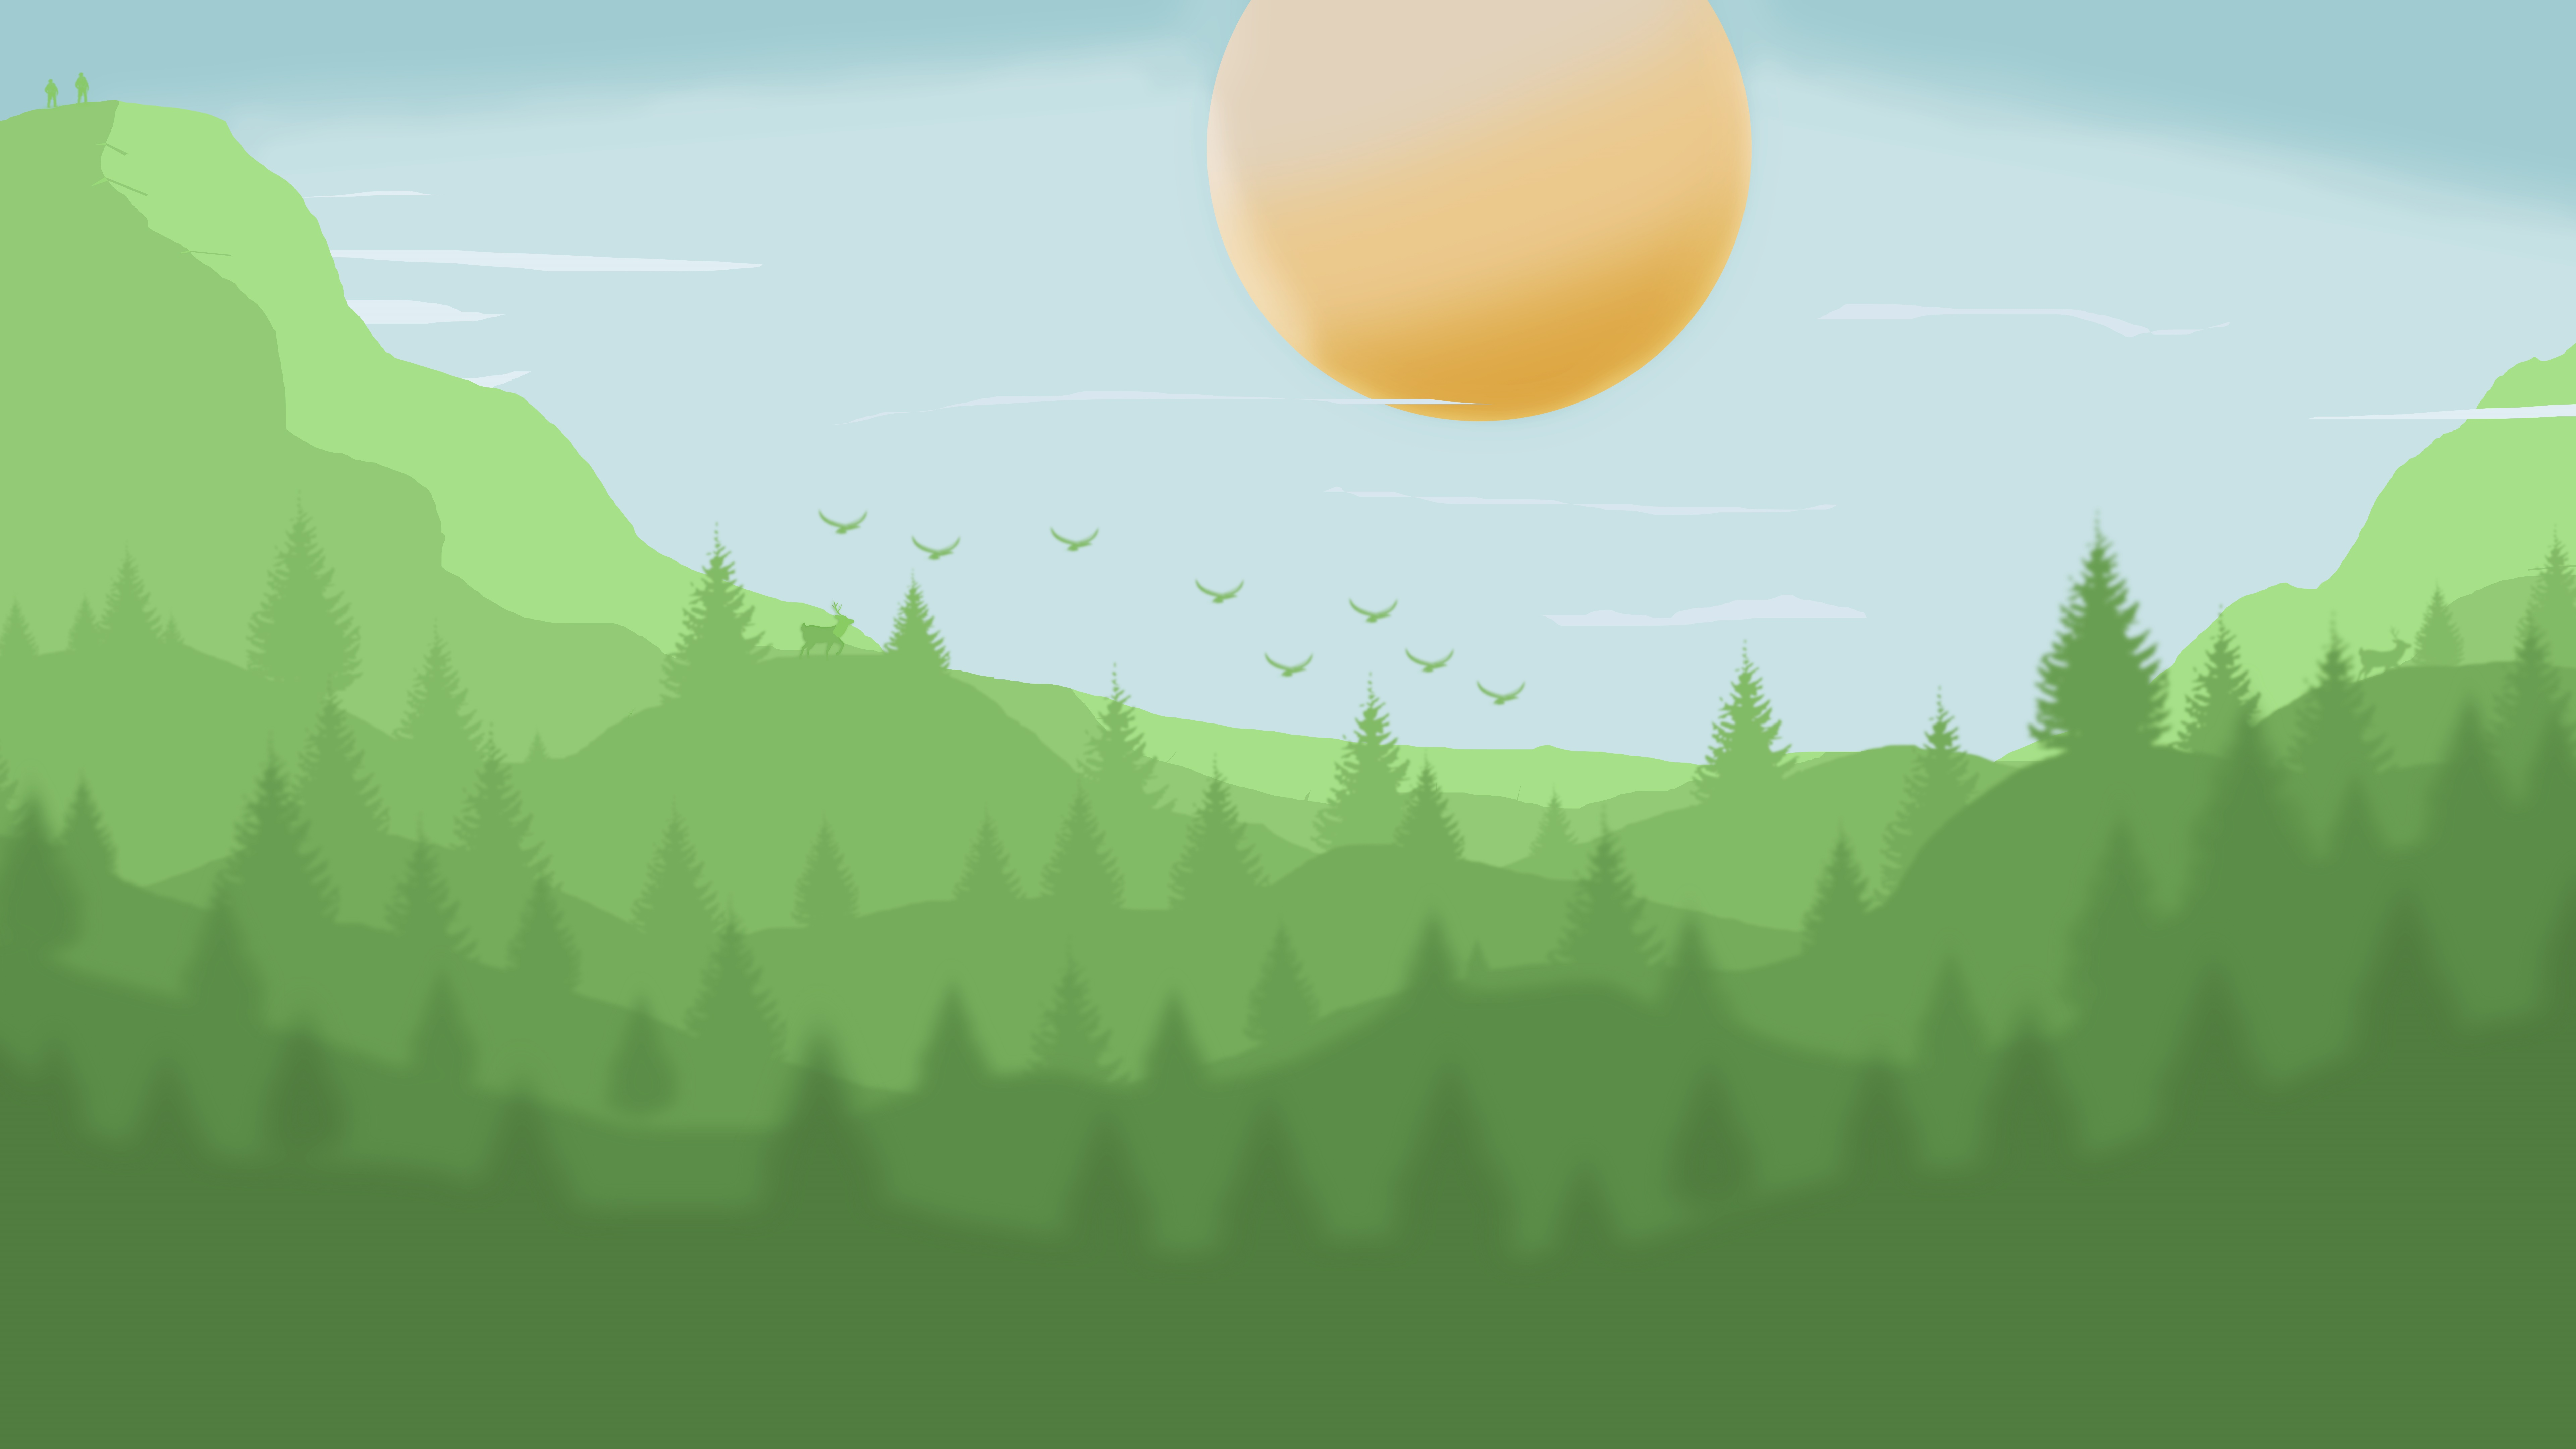 Minimalist green forest wallpaper